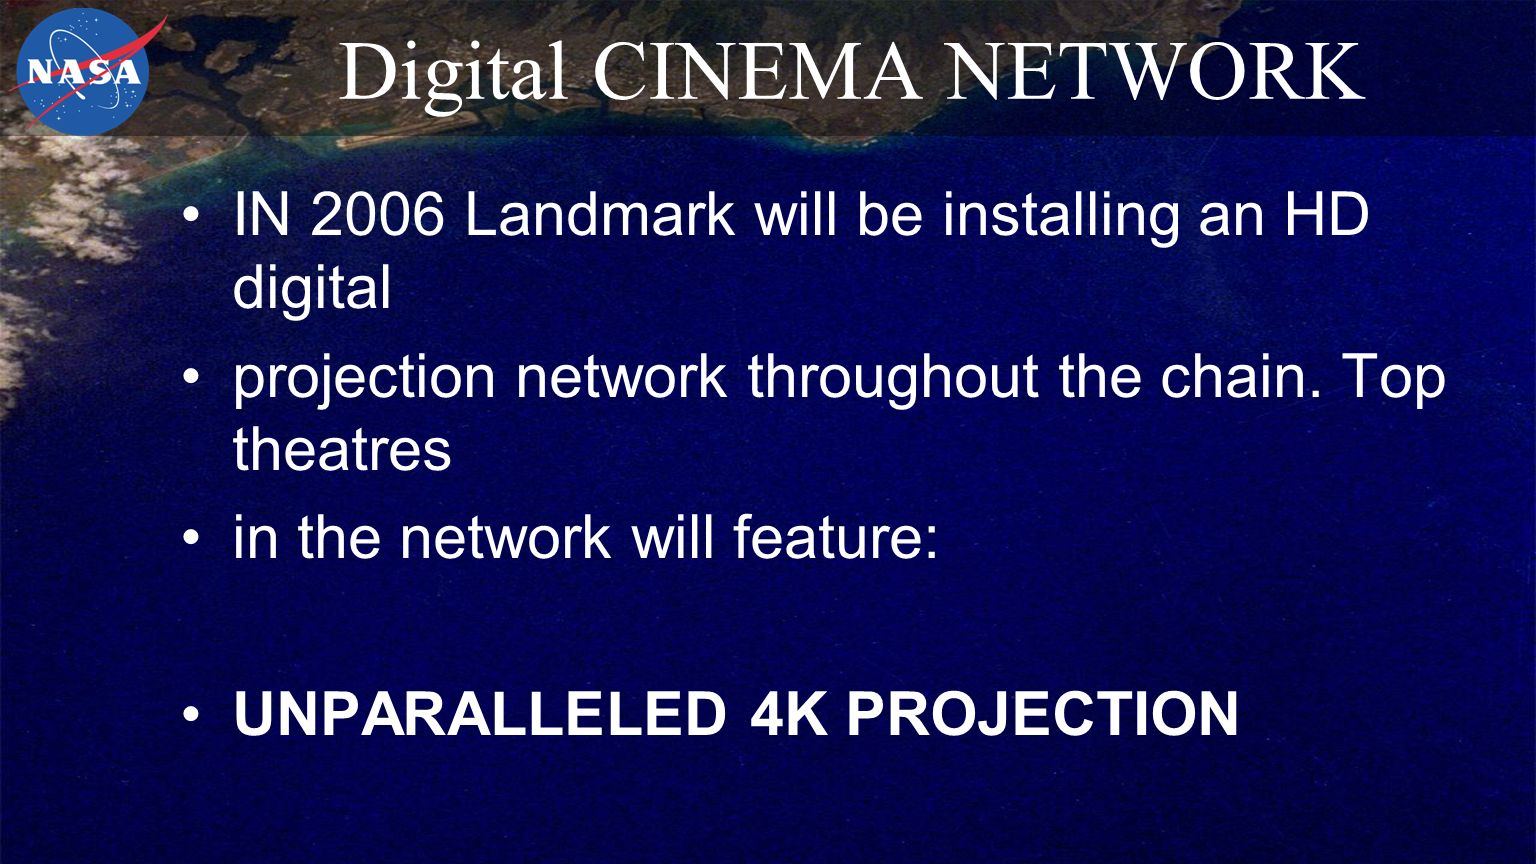 Digital CINEMA NETWORK IN 2006 Landmark will be installing an HD digital projection network throughout the chain.